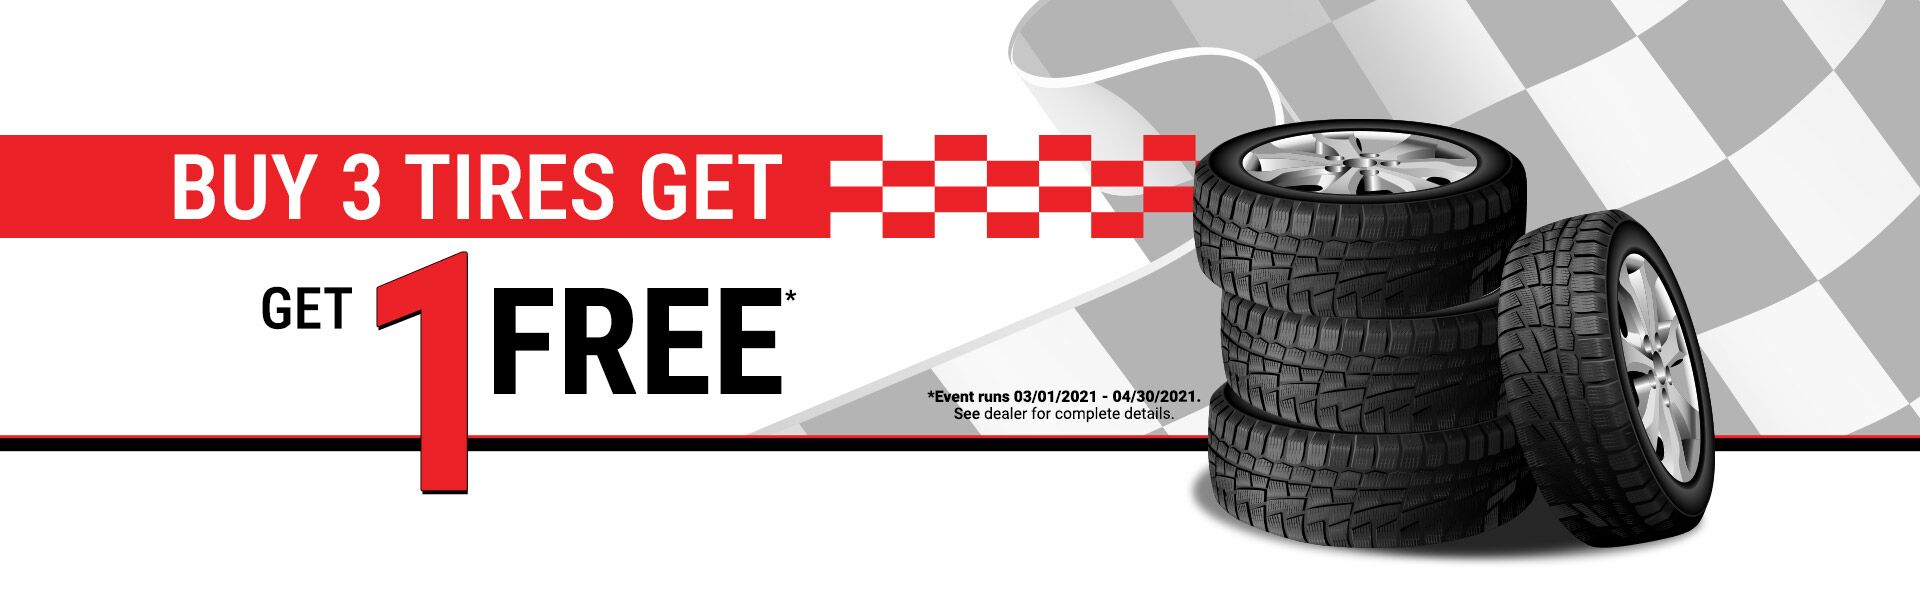 Buy 3 Tire Get 1 free